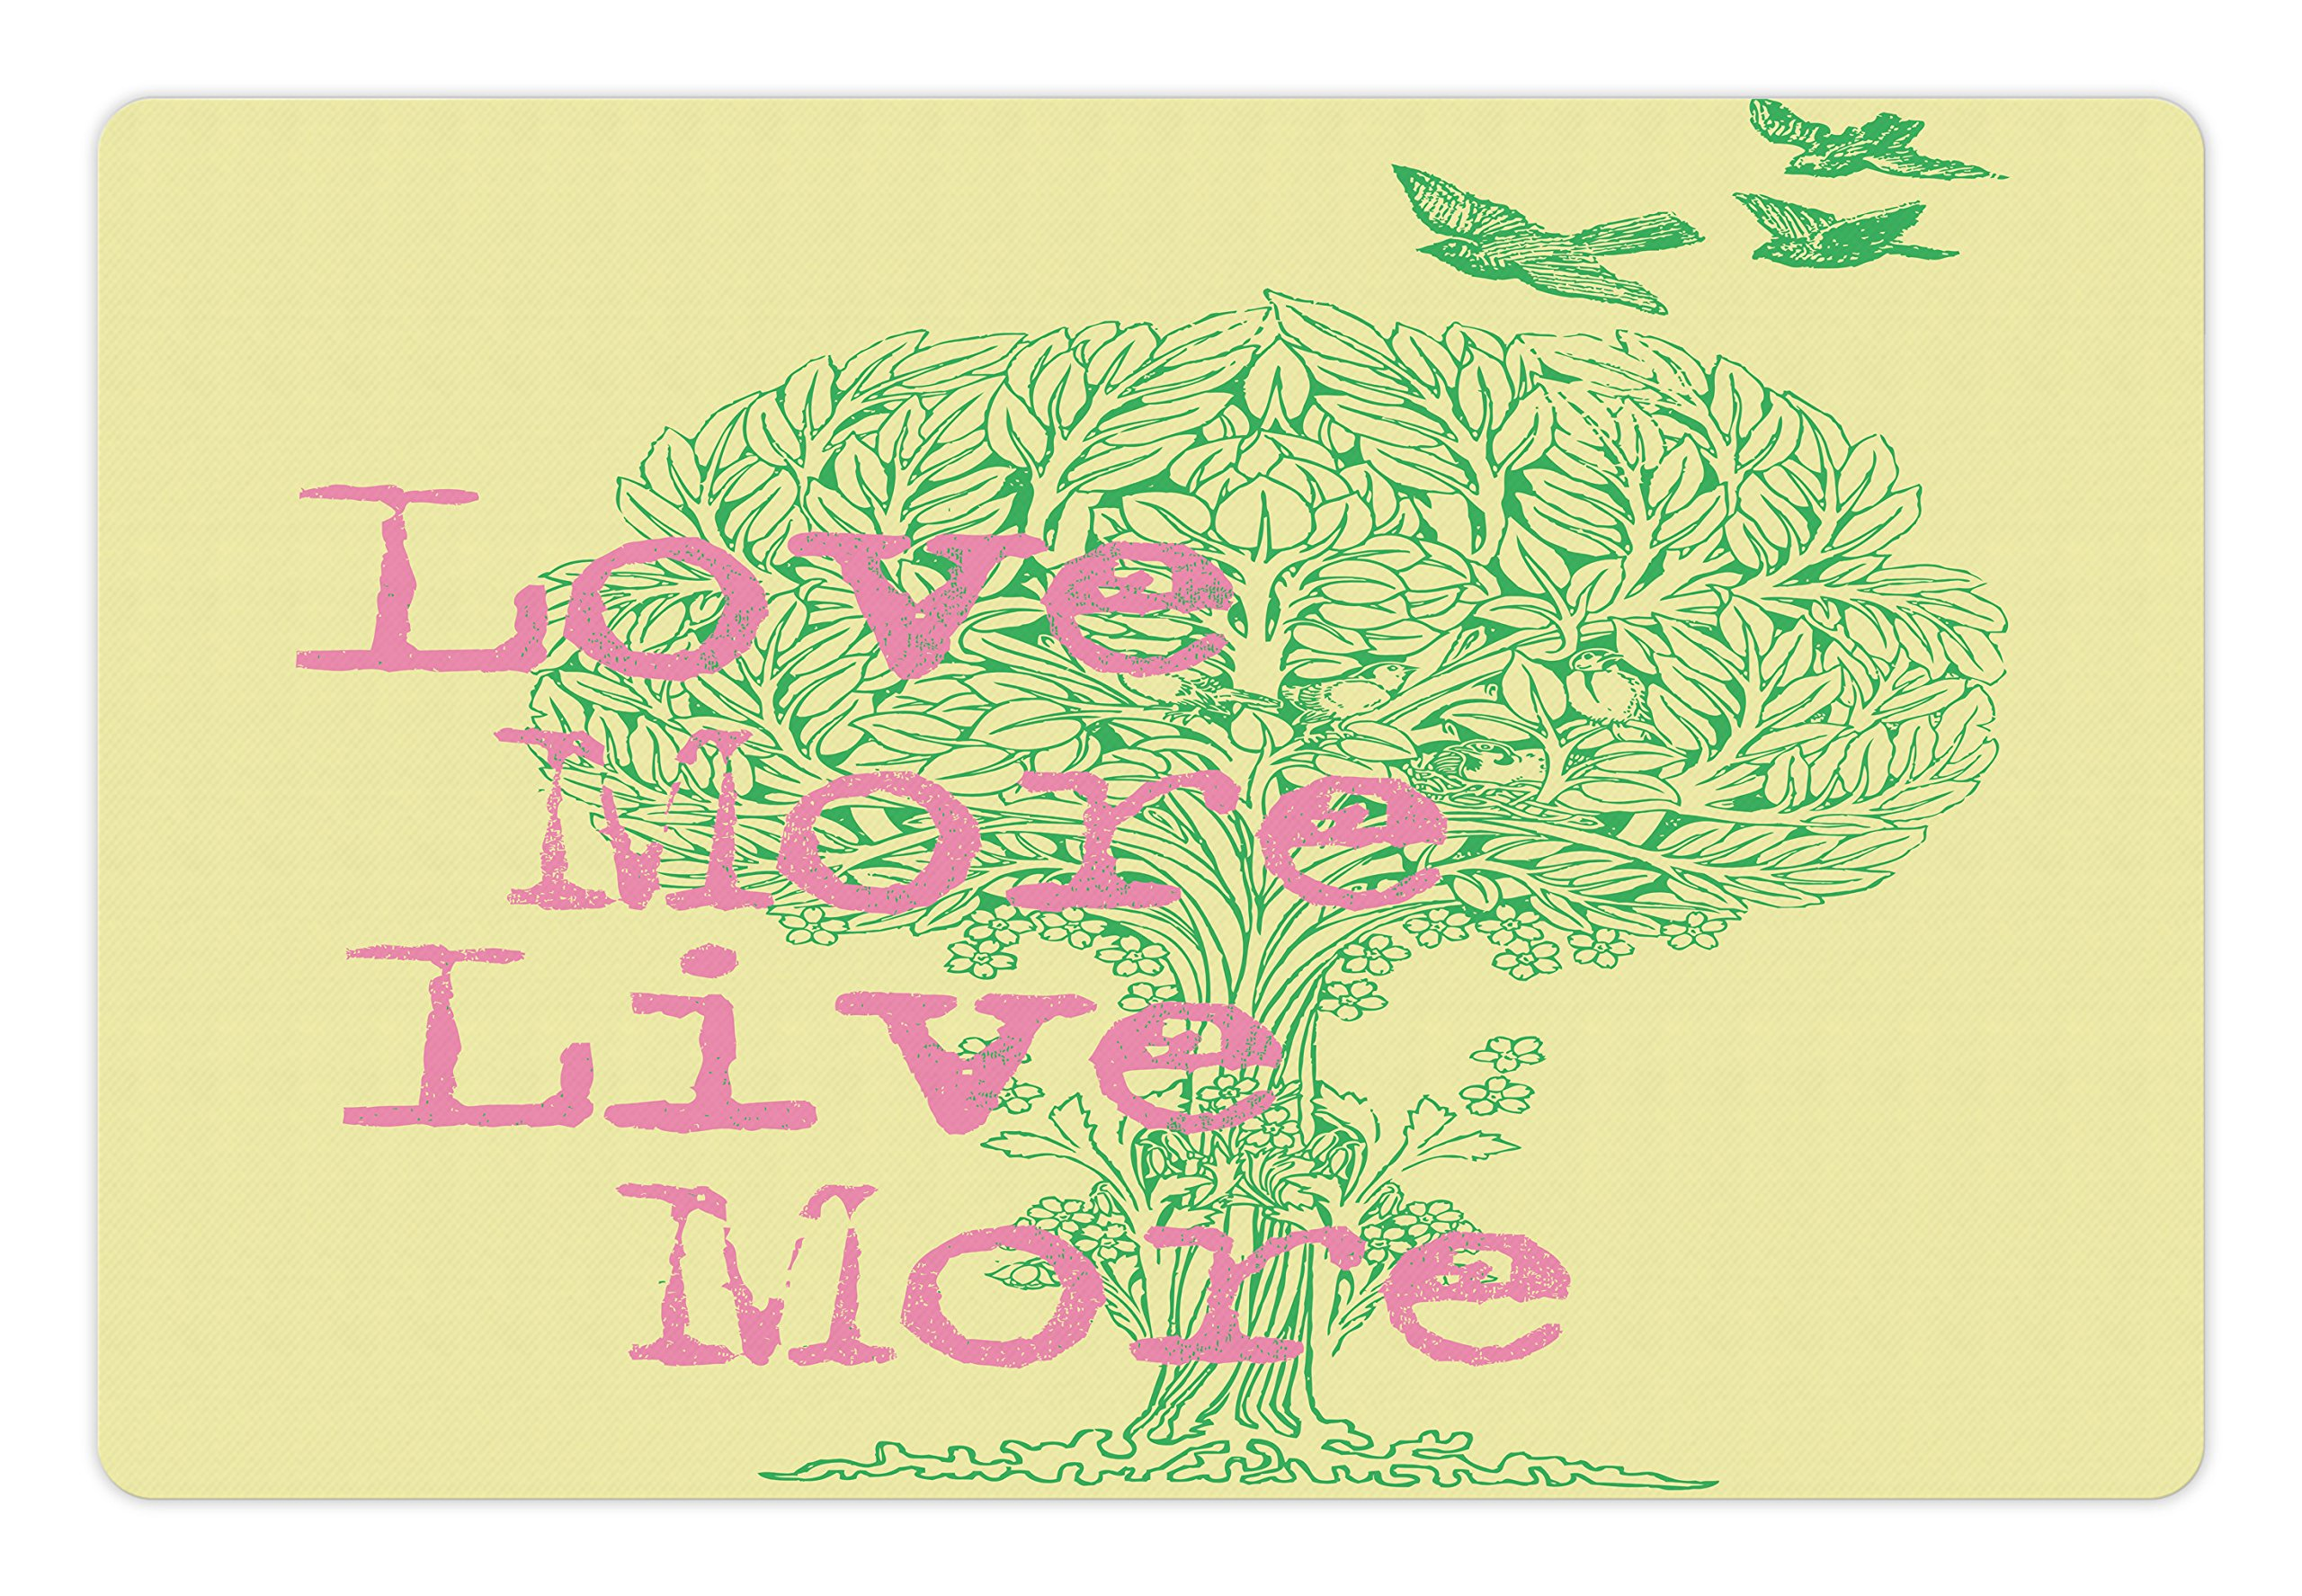 Ambesonne Animal Pet Mat for Food and Water, Love Live and Peace Image Positive Wishes for the World Artistic Work, Rectangle Non-Slip Rubber Mat for Dogs and Cats, Green Soft Pink Yellow by Ambesonne (Image #2)